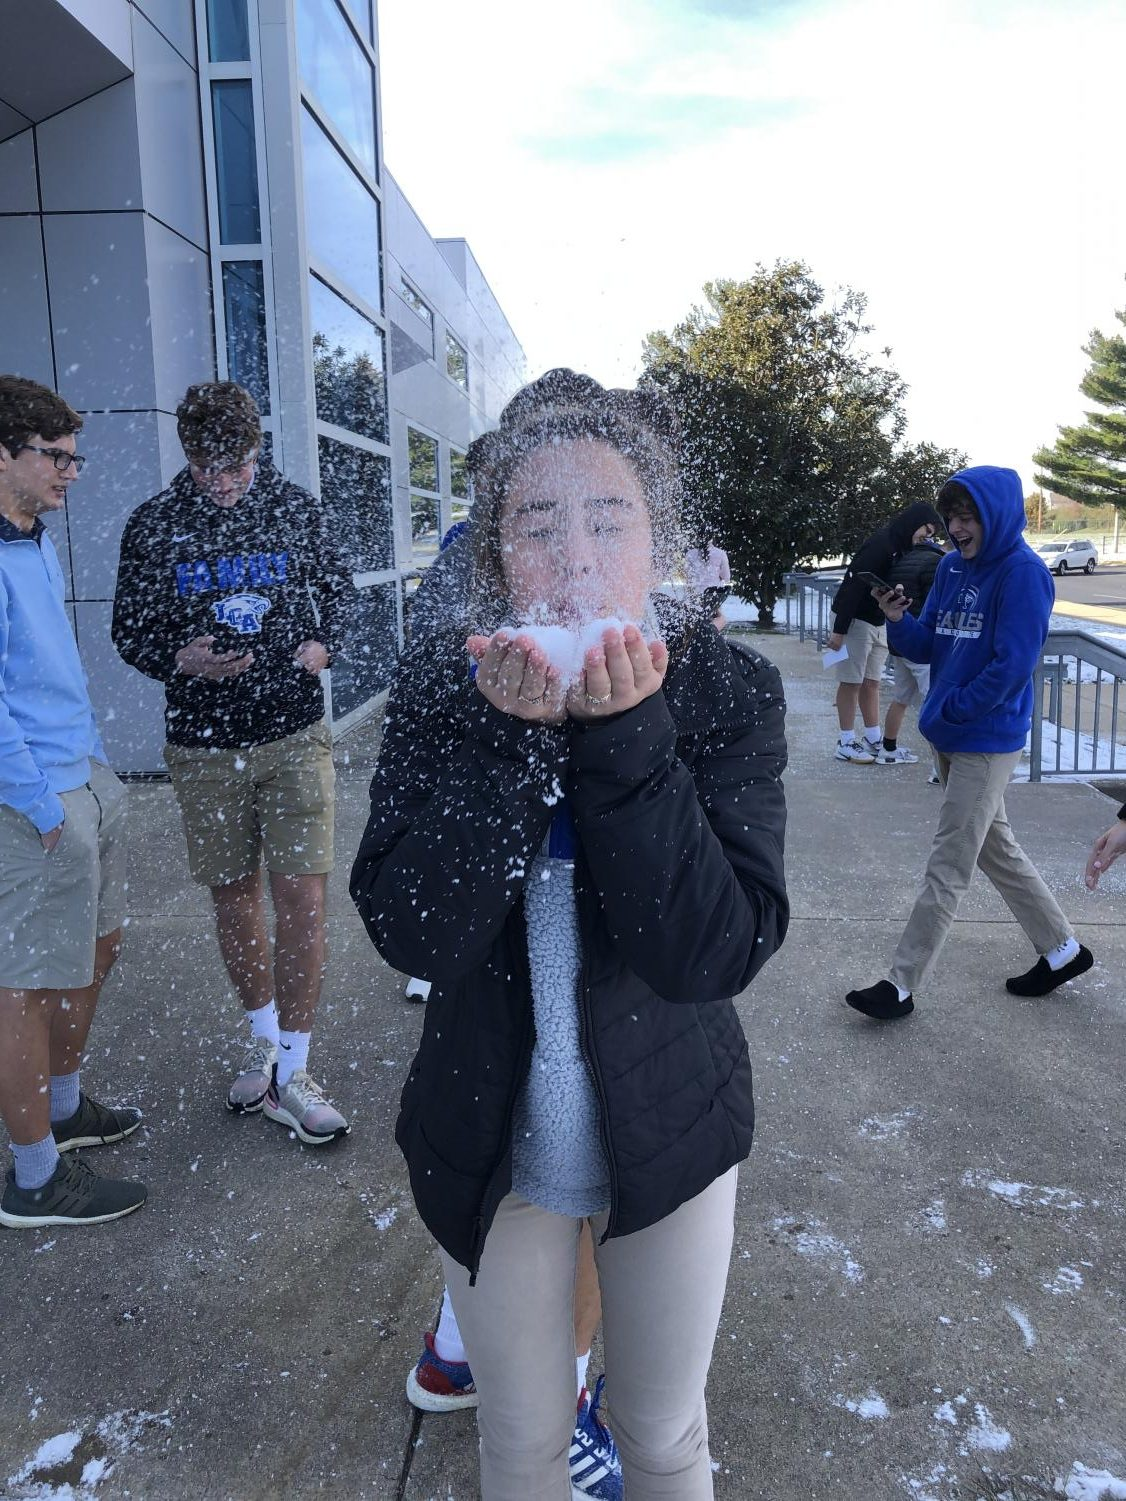 Maryssa Phillips, 9, plays in the snow while her photography class is outside taking pictures of the snow.